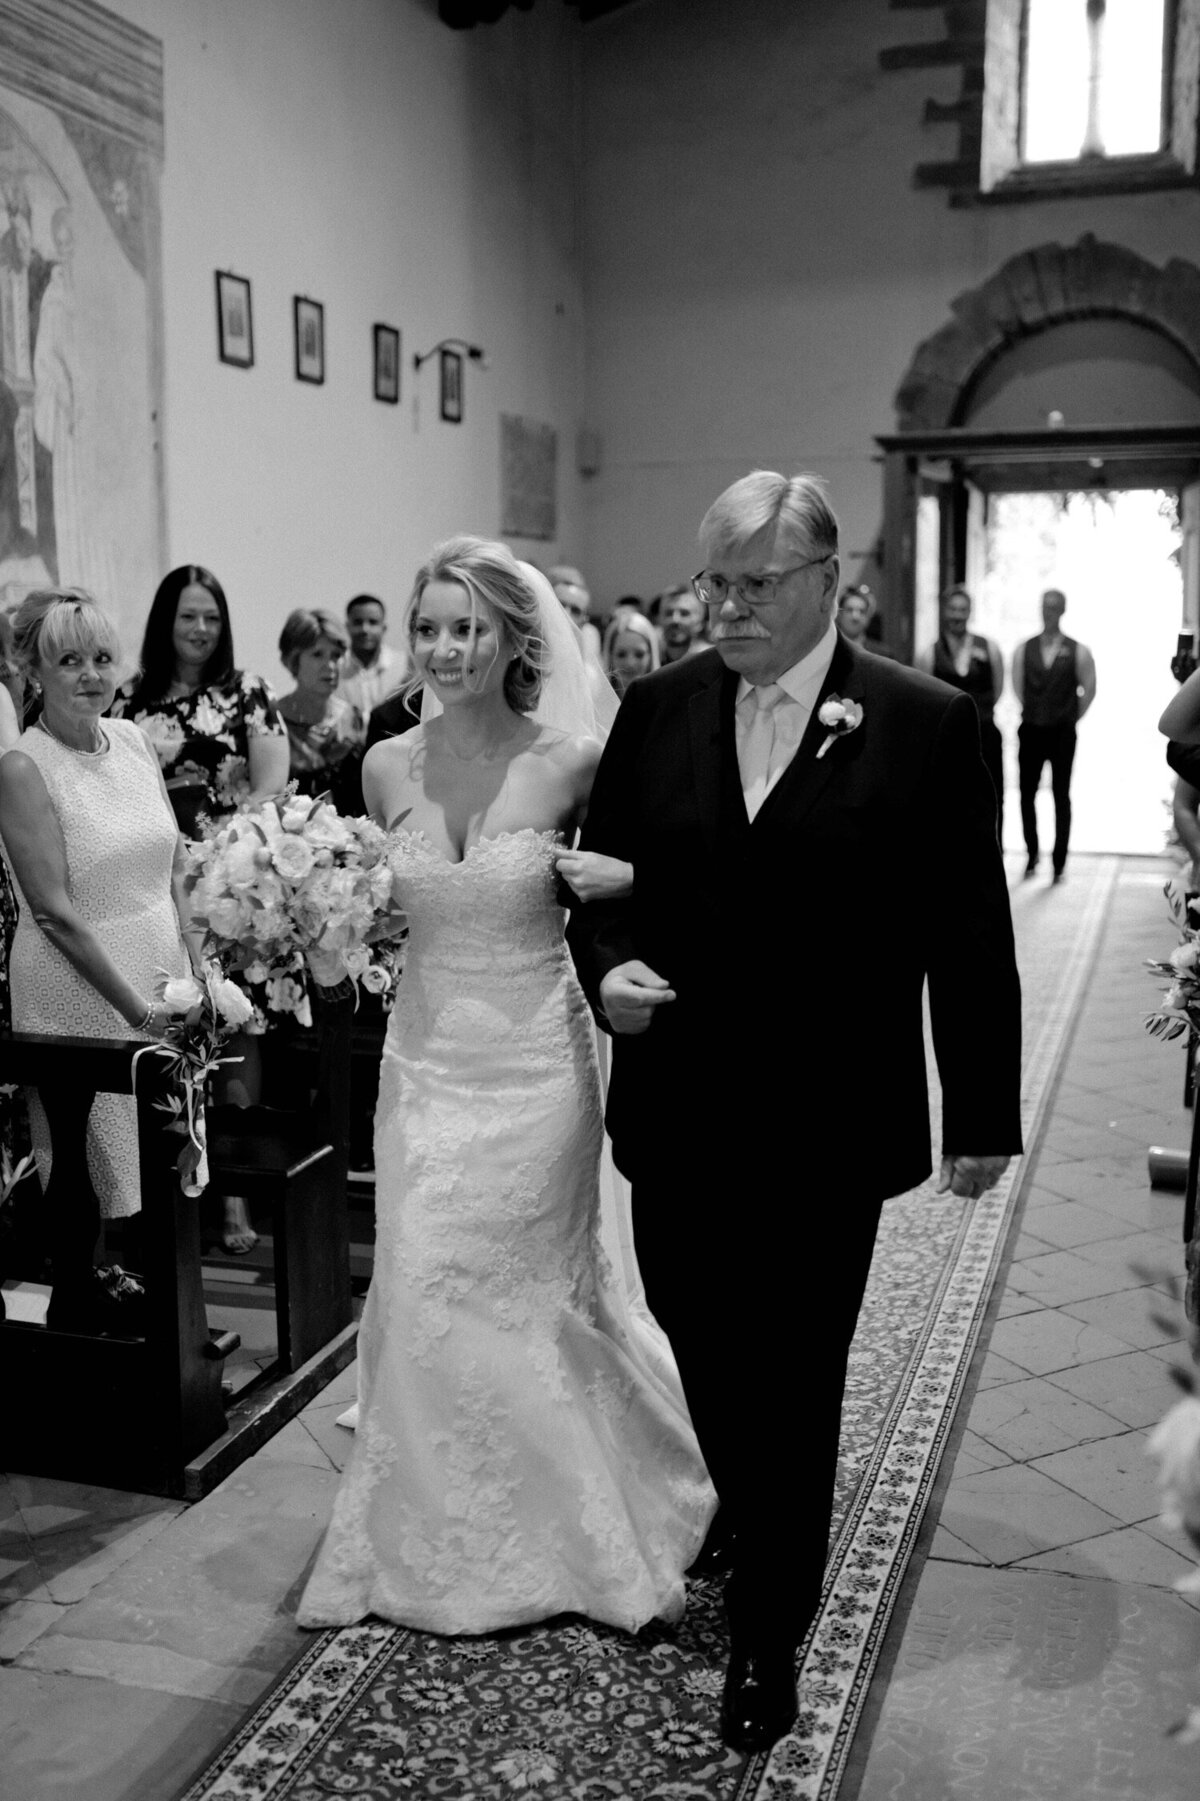 062_Tuscany_Luxury_Wedding_Photographer (71 von 215)_So thankful to be a luxury destination wedding photographer in Tuscany! Claire and James invited their beloved family & friends from London to their luxury wedding in Tuscany.